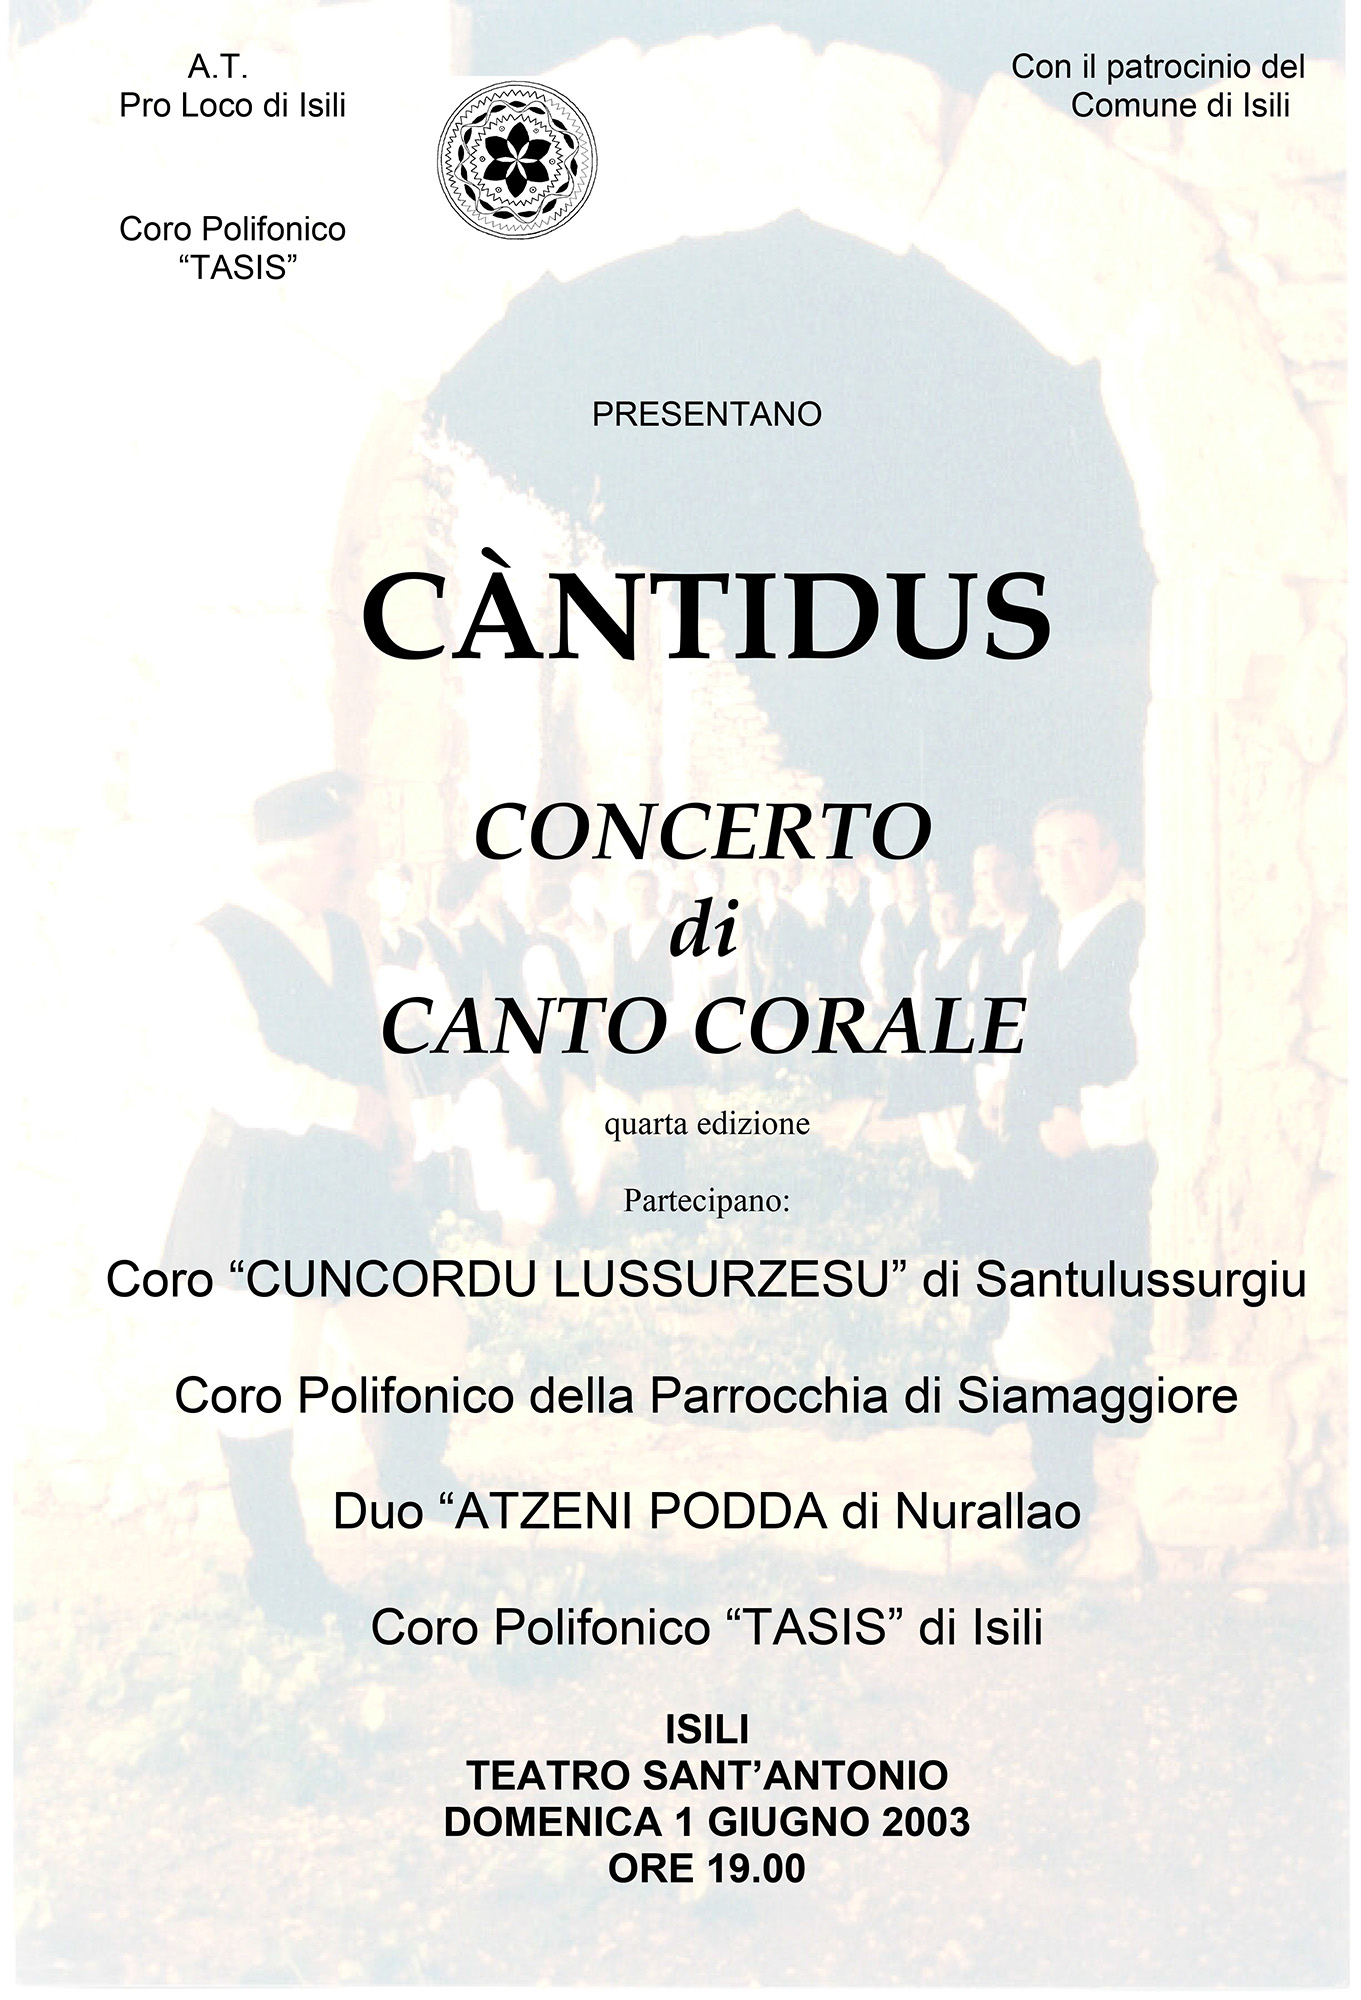 Cantidus 2003